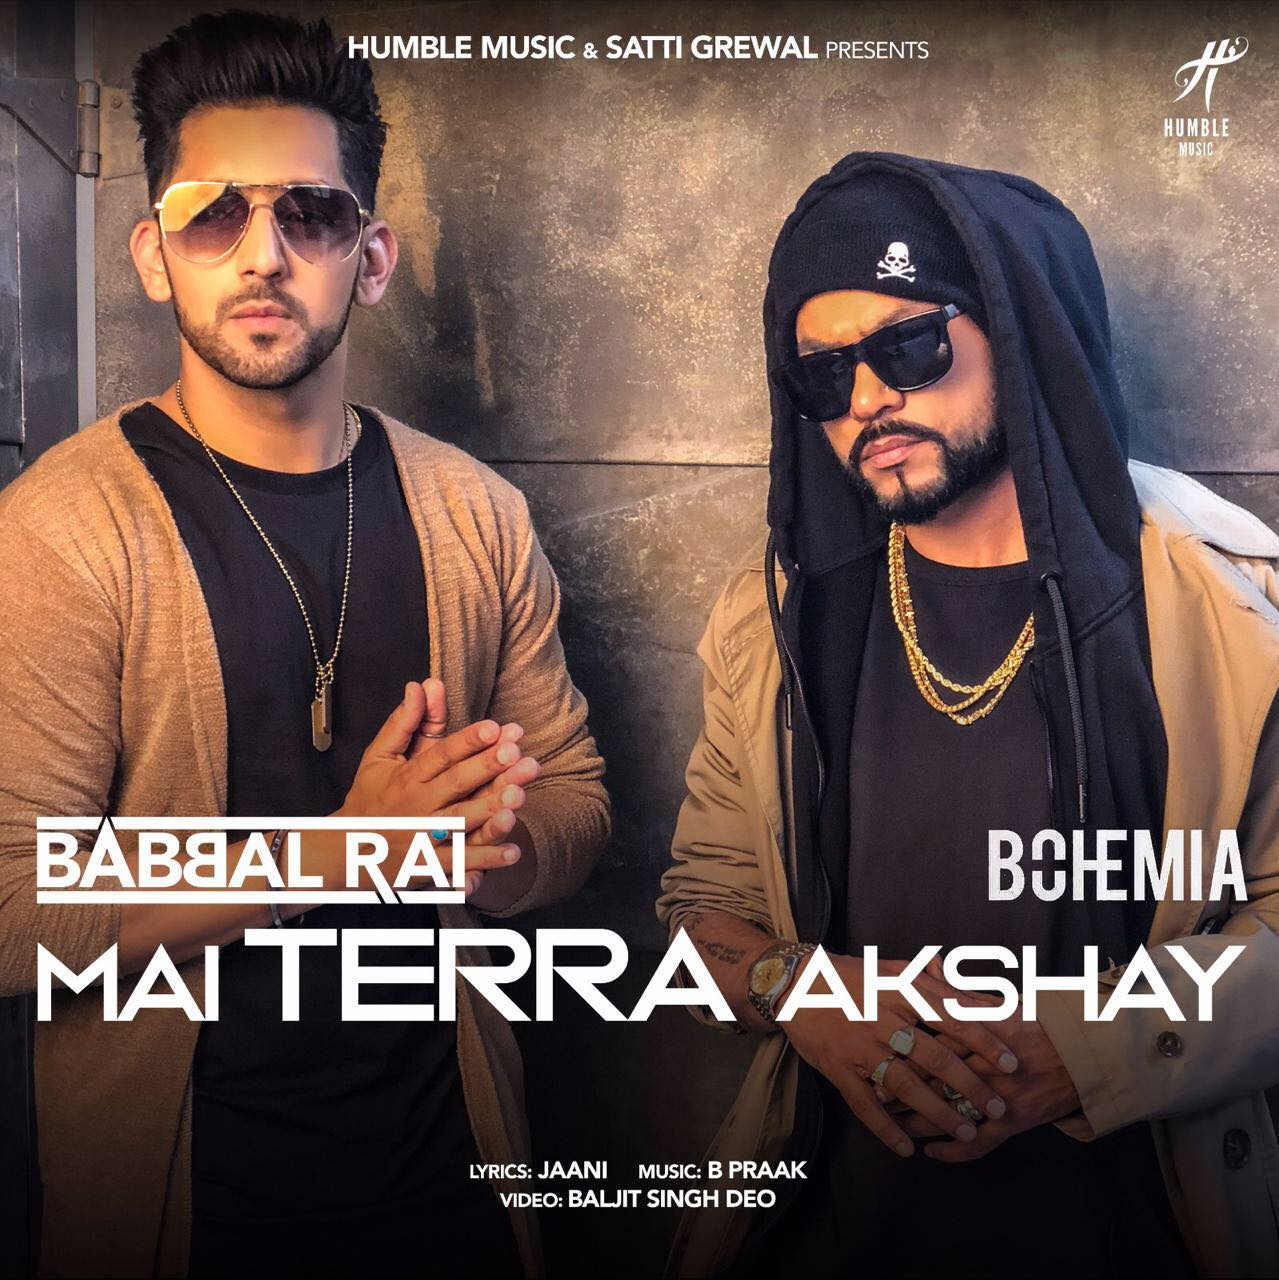 Main Tera Akshay Lyrics - Babbal Rai | B Praak | Jaani